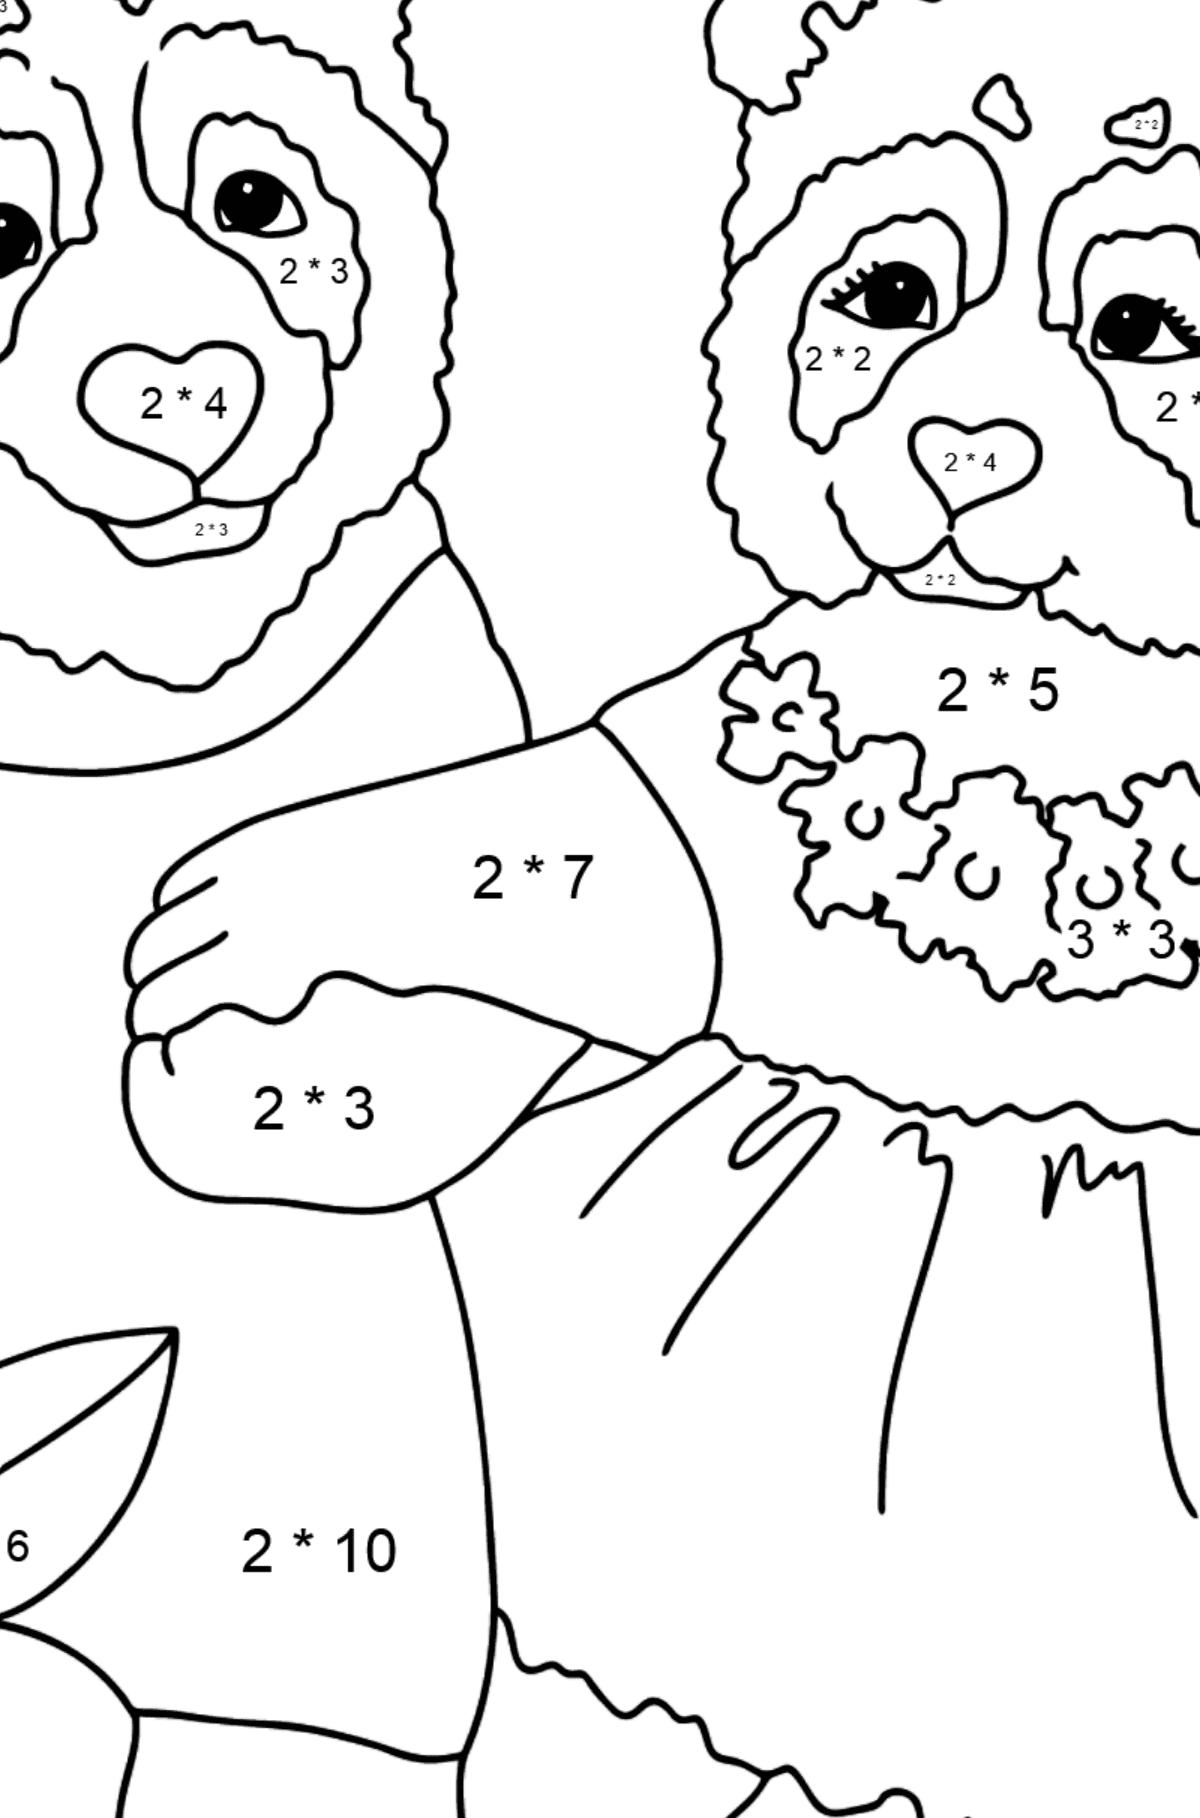 Coloring Page - Pandas are Taking a Walk - Math Coloring - Multiplication for Kids